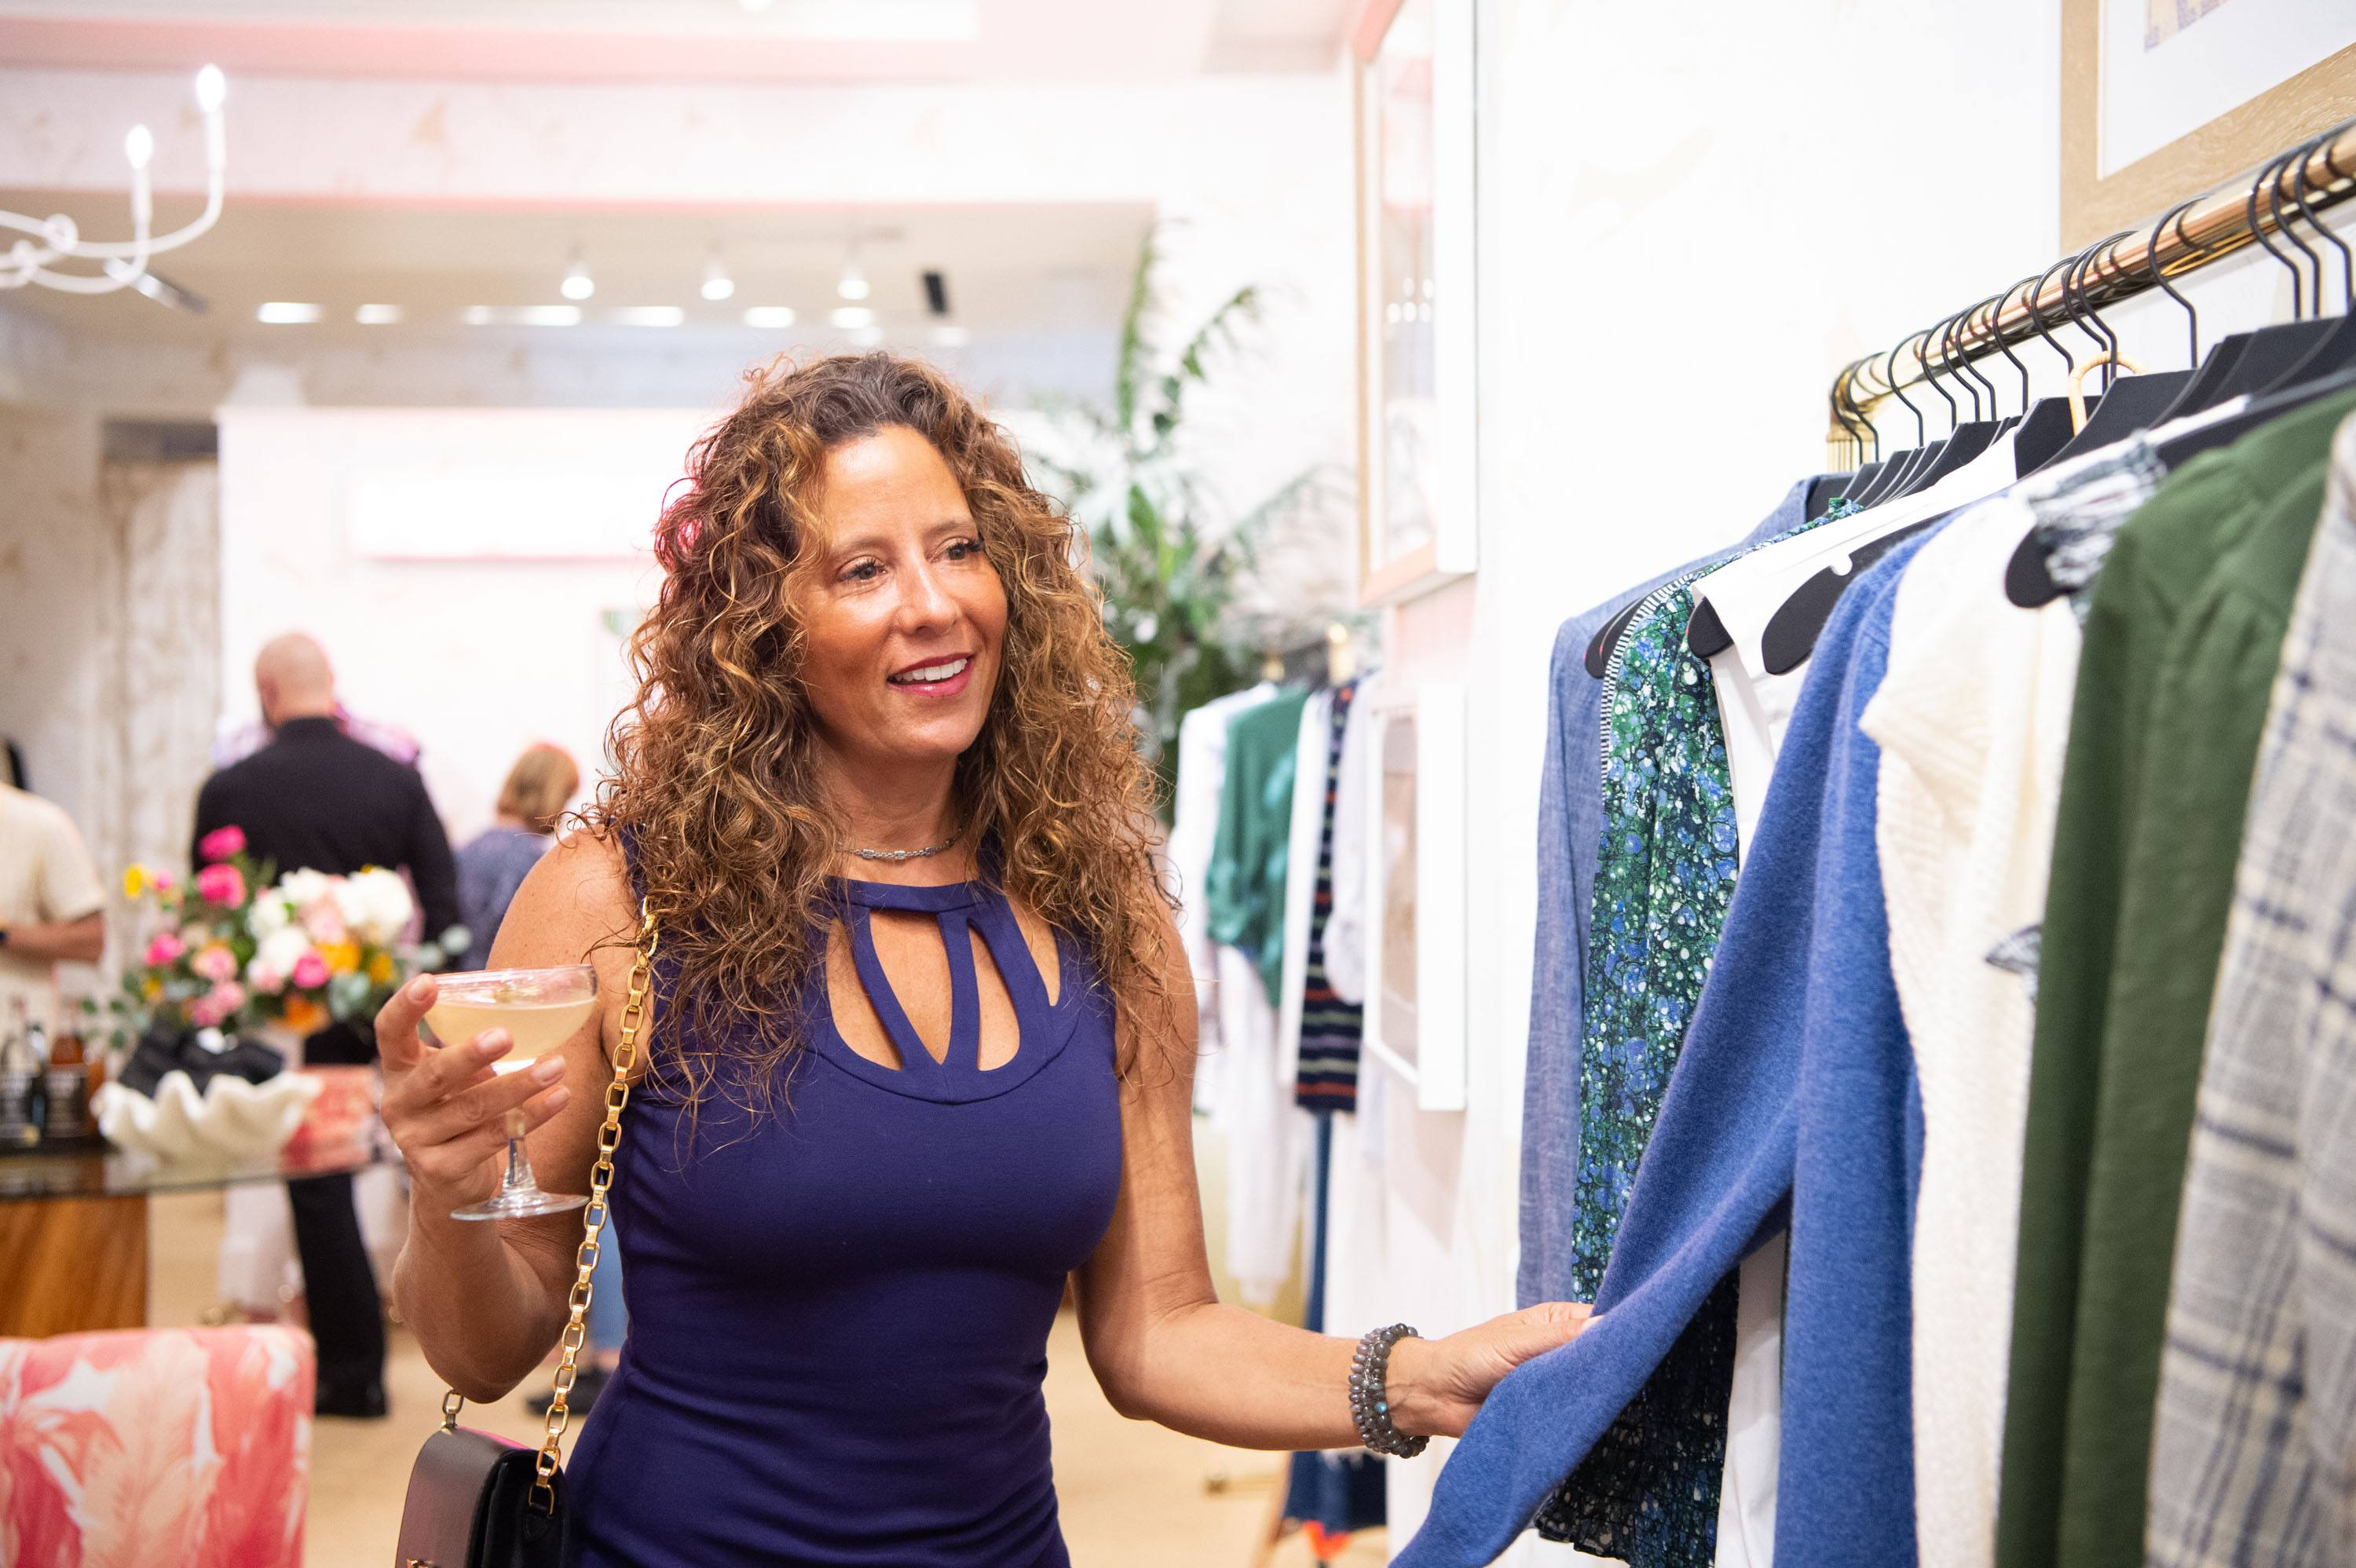 Woman is pictured smiling and browsing the Veronica Beard merchandise while holding a cocktail